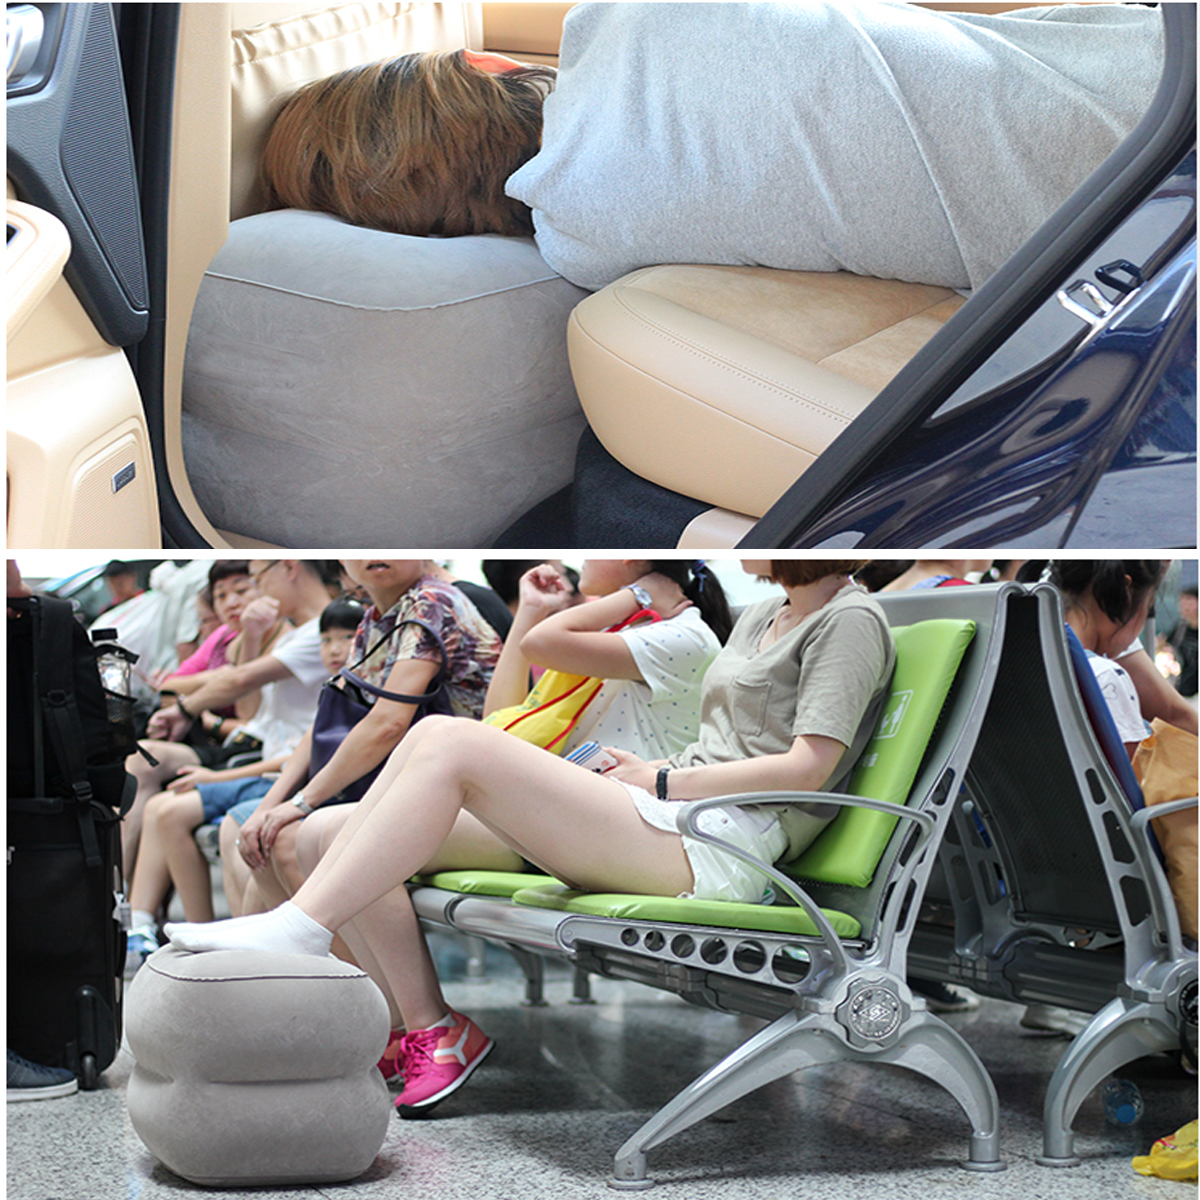 Airplane Train Travel Inflatable Foot Rest Portable Pillow Pad Cushion With Pump